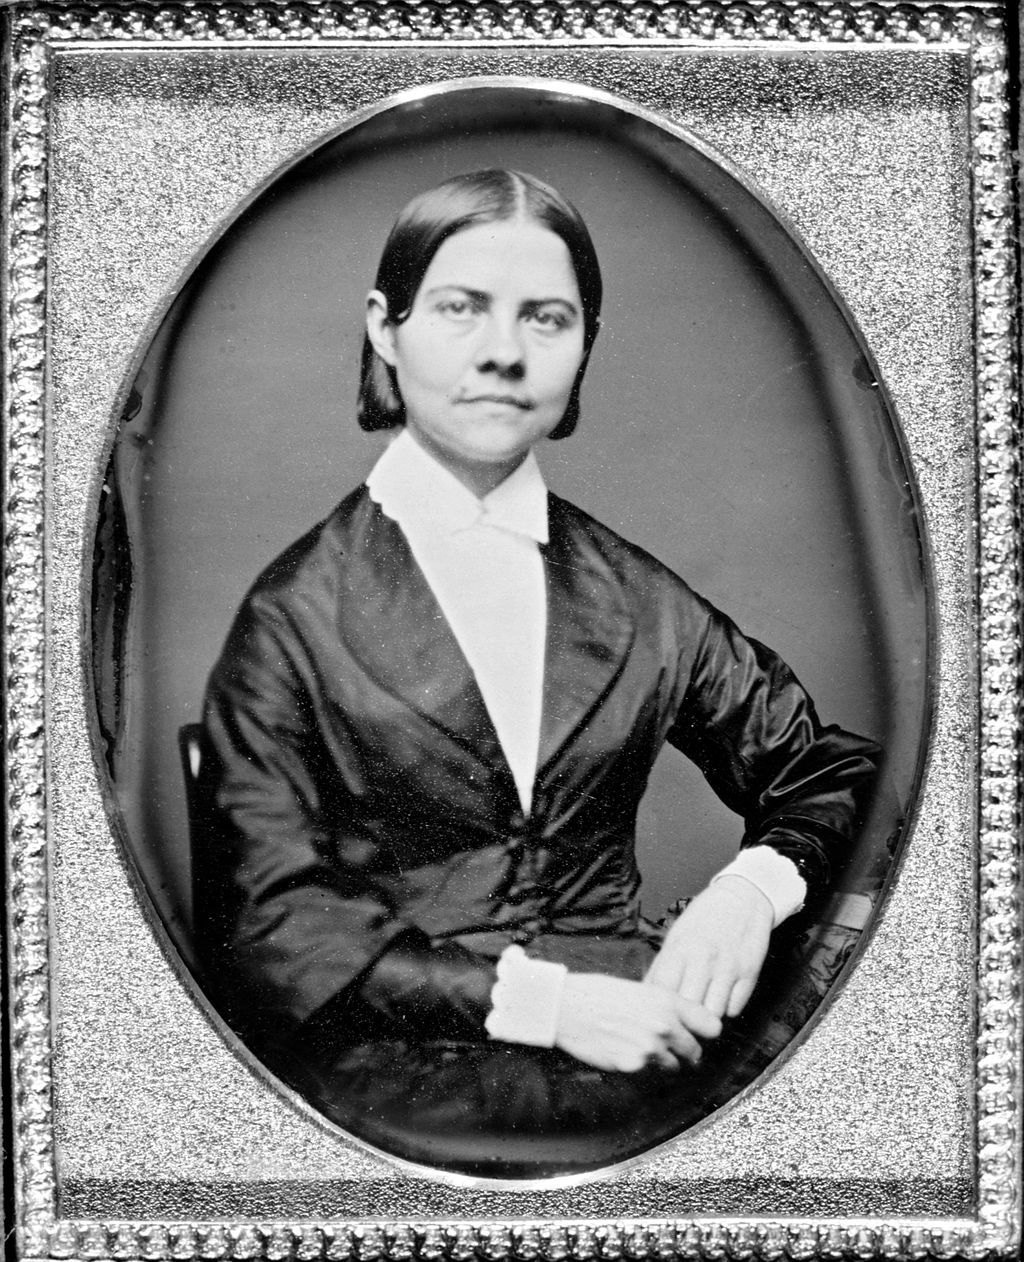 Lucy Stone (1818-1893), prominent women's suffragist and abolitionist. She became the first woman from Massachusetts to earn a college degree and was a public advocate on behalf of women's rights and anti-slavery initiatives. Stone pursued her advocacy despite often hostile laws of the time preventing women from speaking in public.